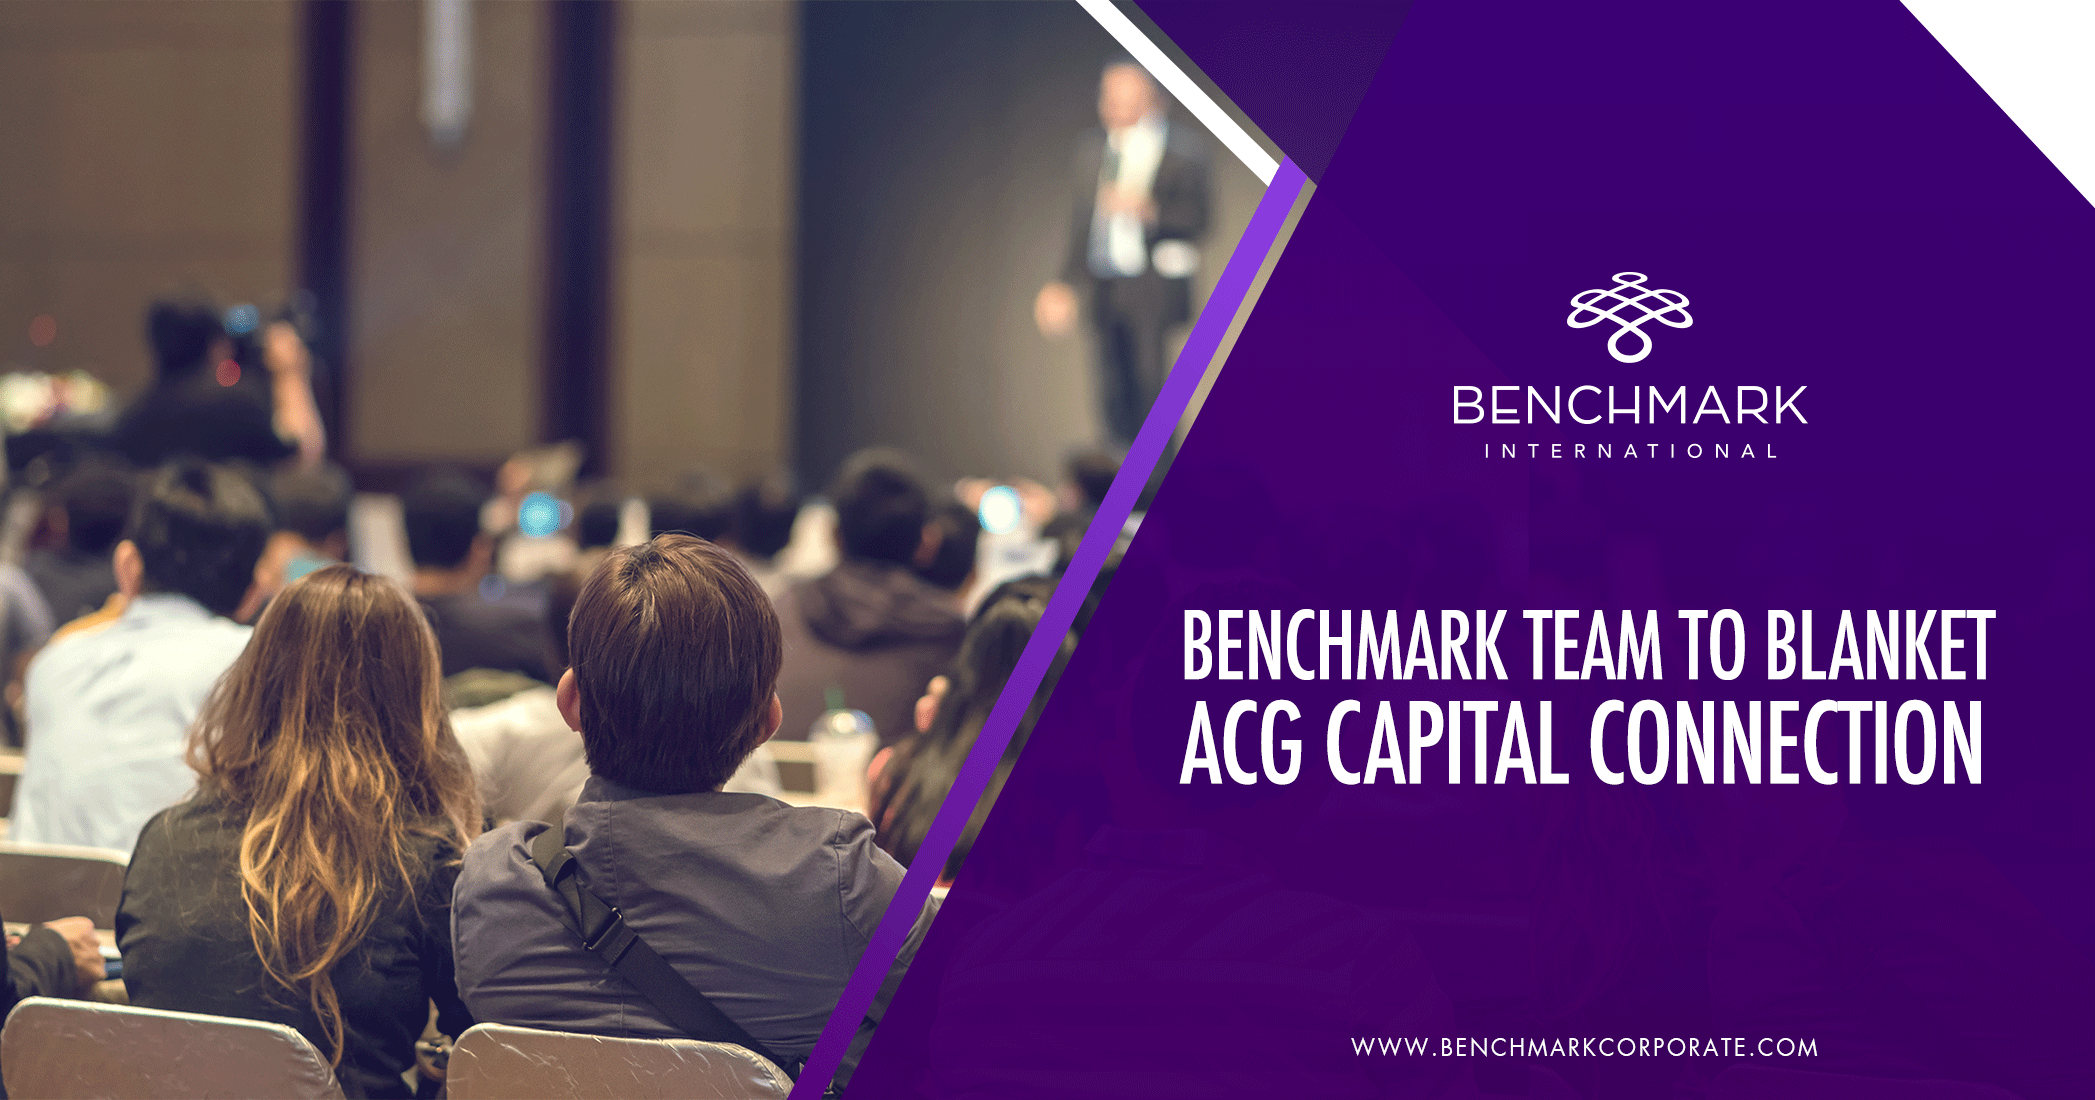 Benchmark International's Team to Blanket ACG Capital Connection